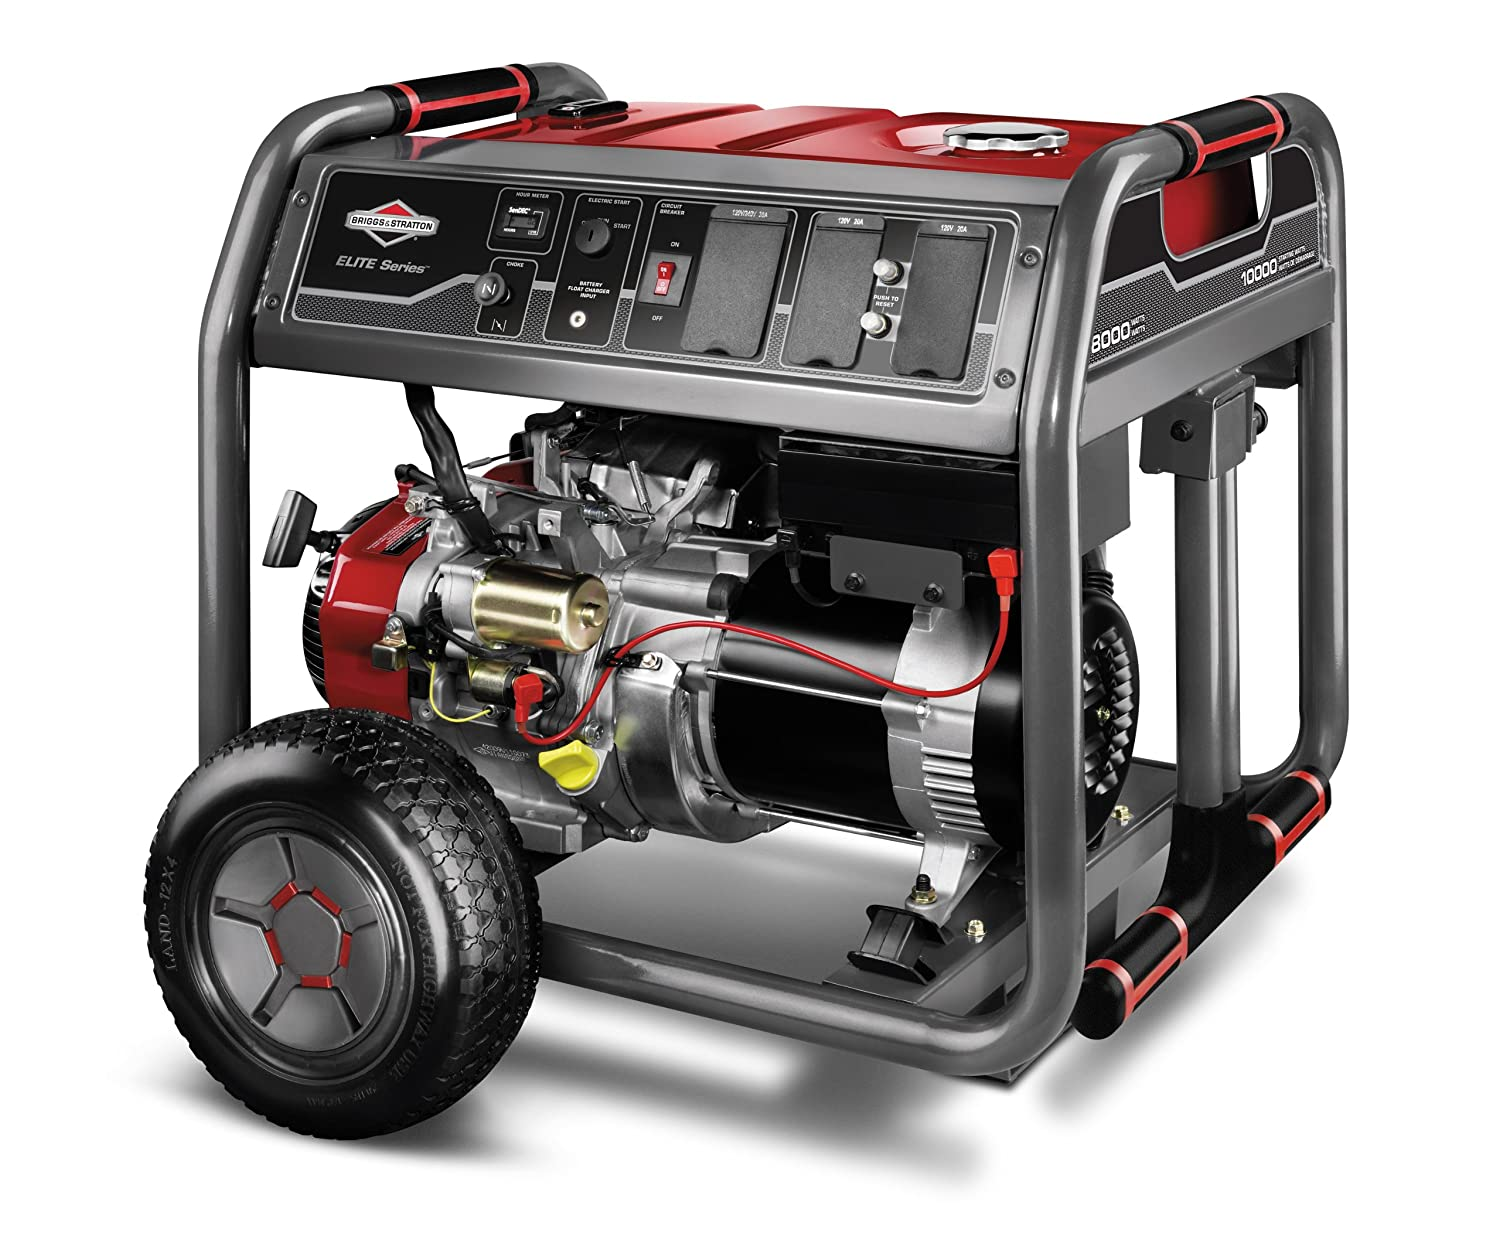 Amazon.com: Briggs & Stratton 30471 8000-Watt Gas Powered Portable Generator  with 2100 Series 420cc Engine and Key Electric Start, Engine Oil Included:  ...